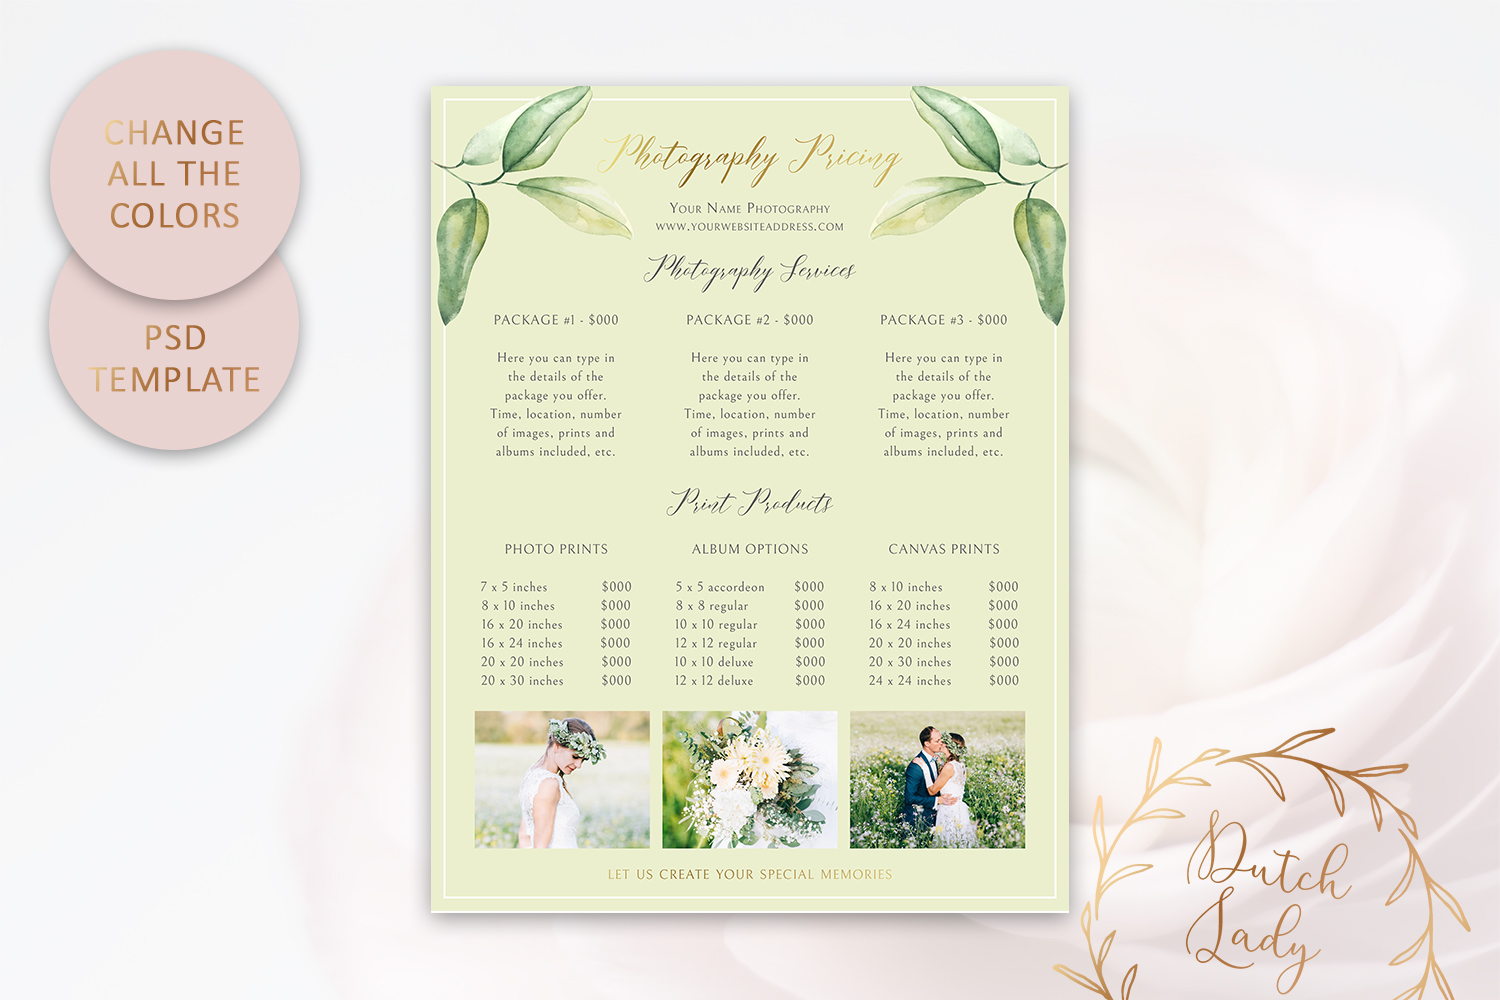 PSD Photography Pricing Guide Template Design #10 example image 4